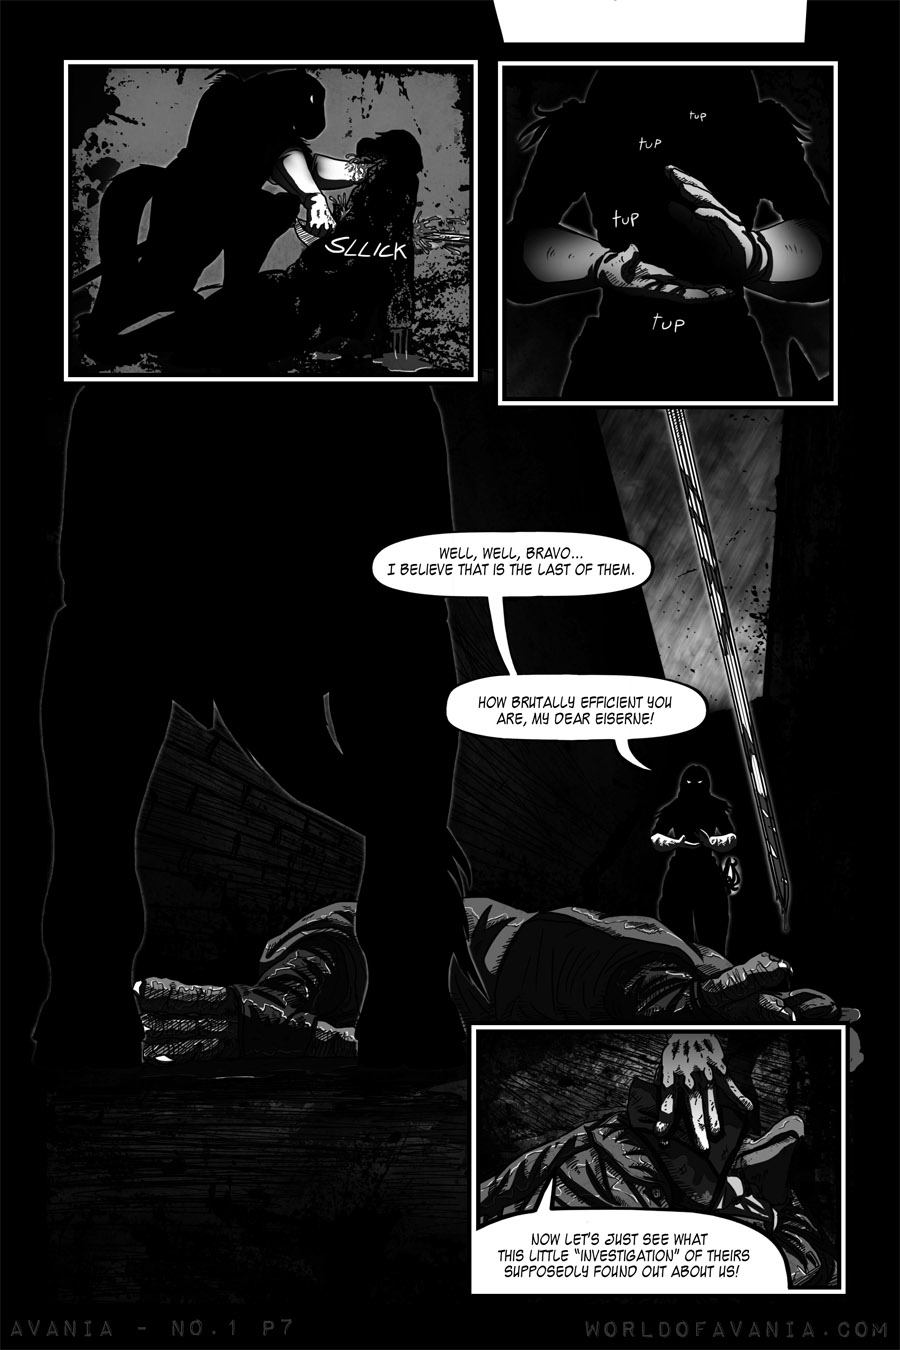 Avania Comic - Issue No.1, Page 7